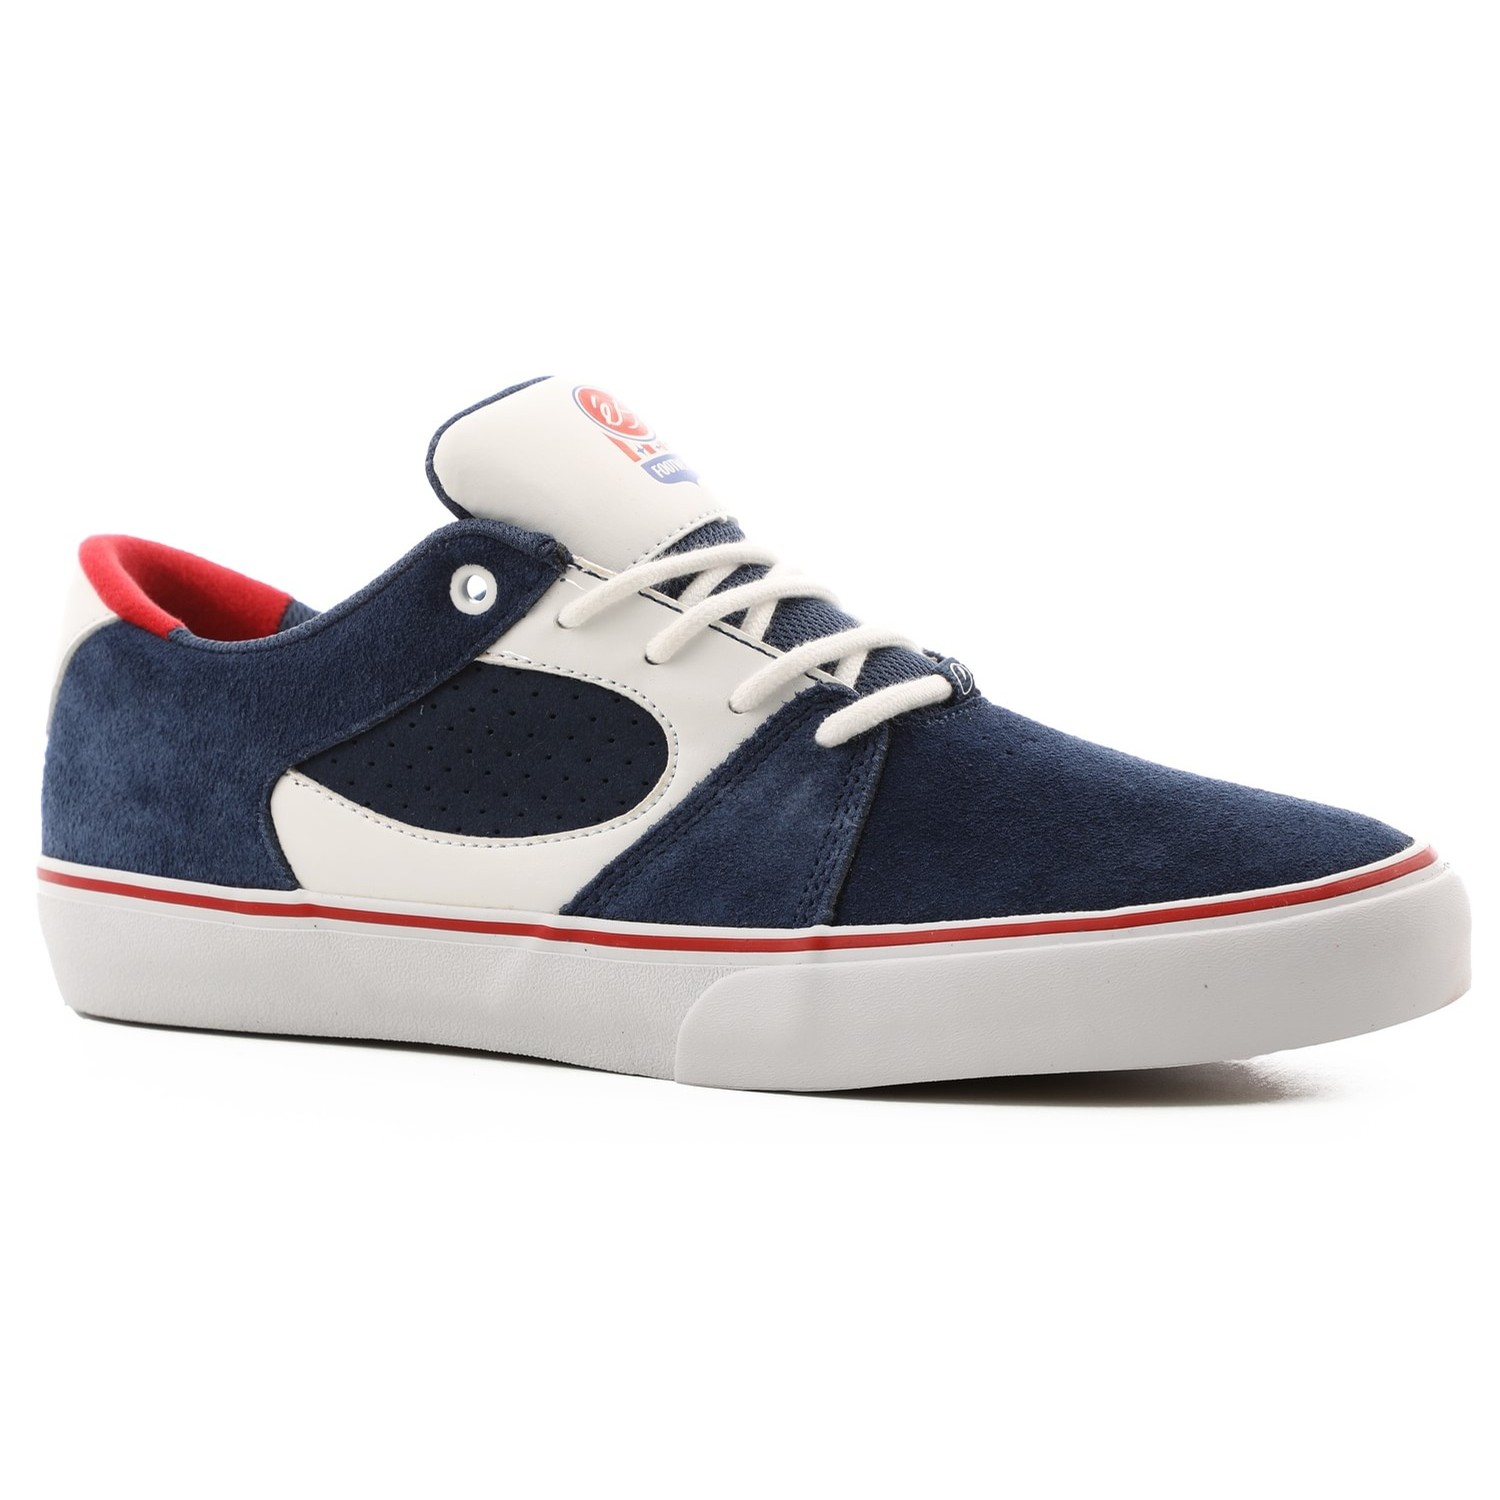 Square Three (Navy/White/Red)